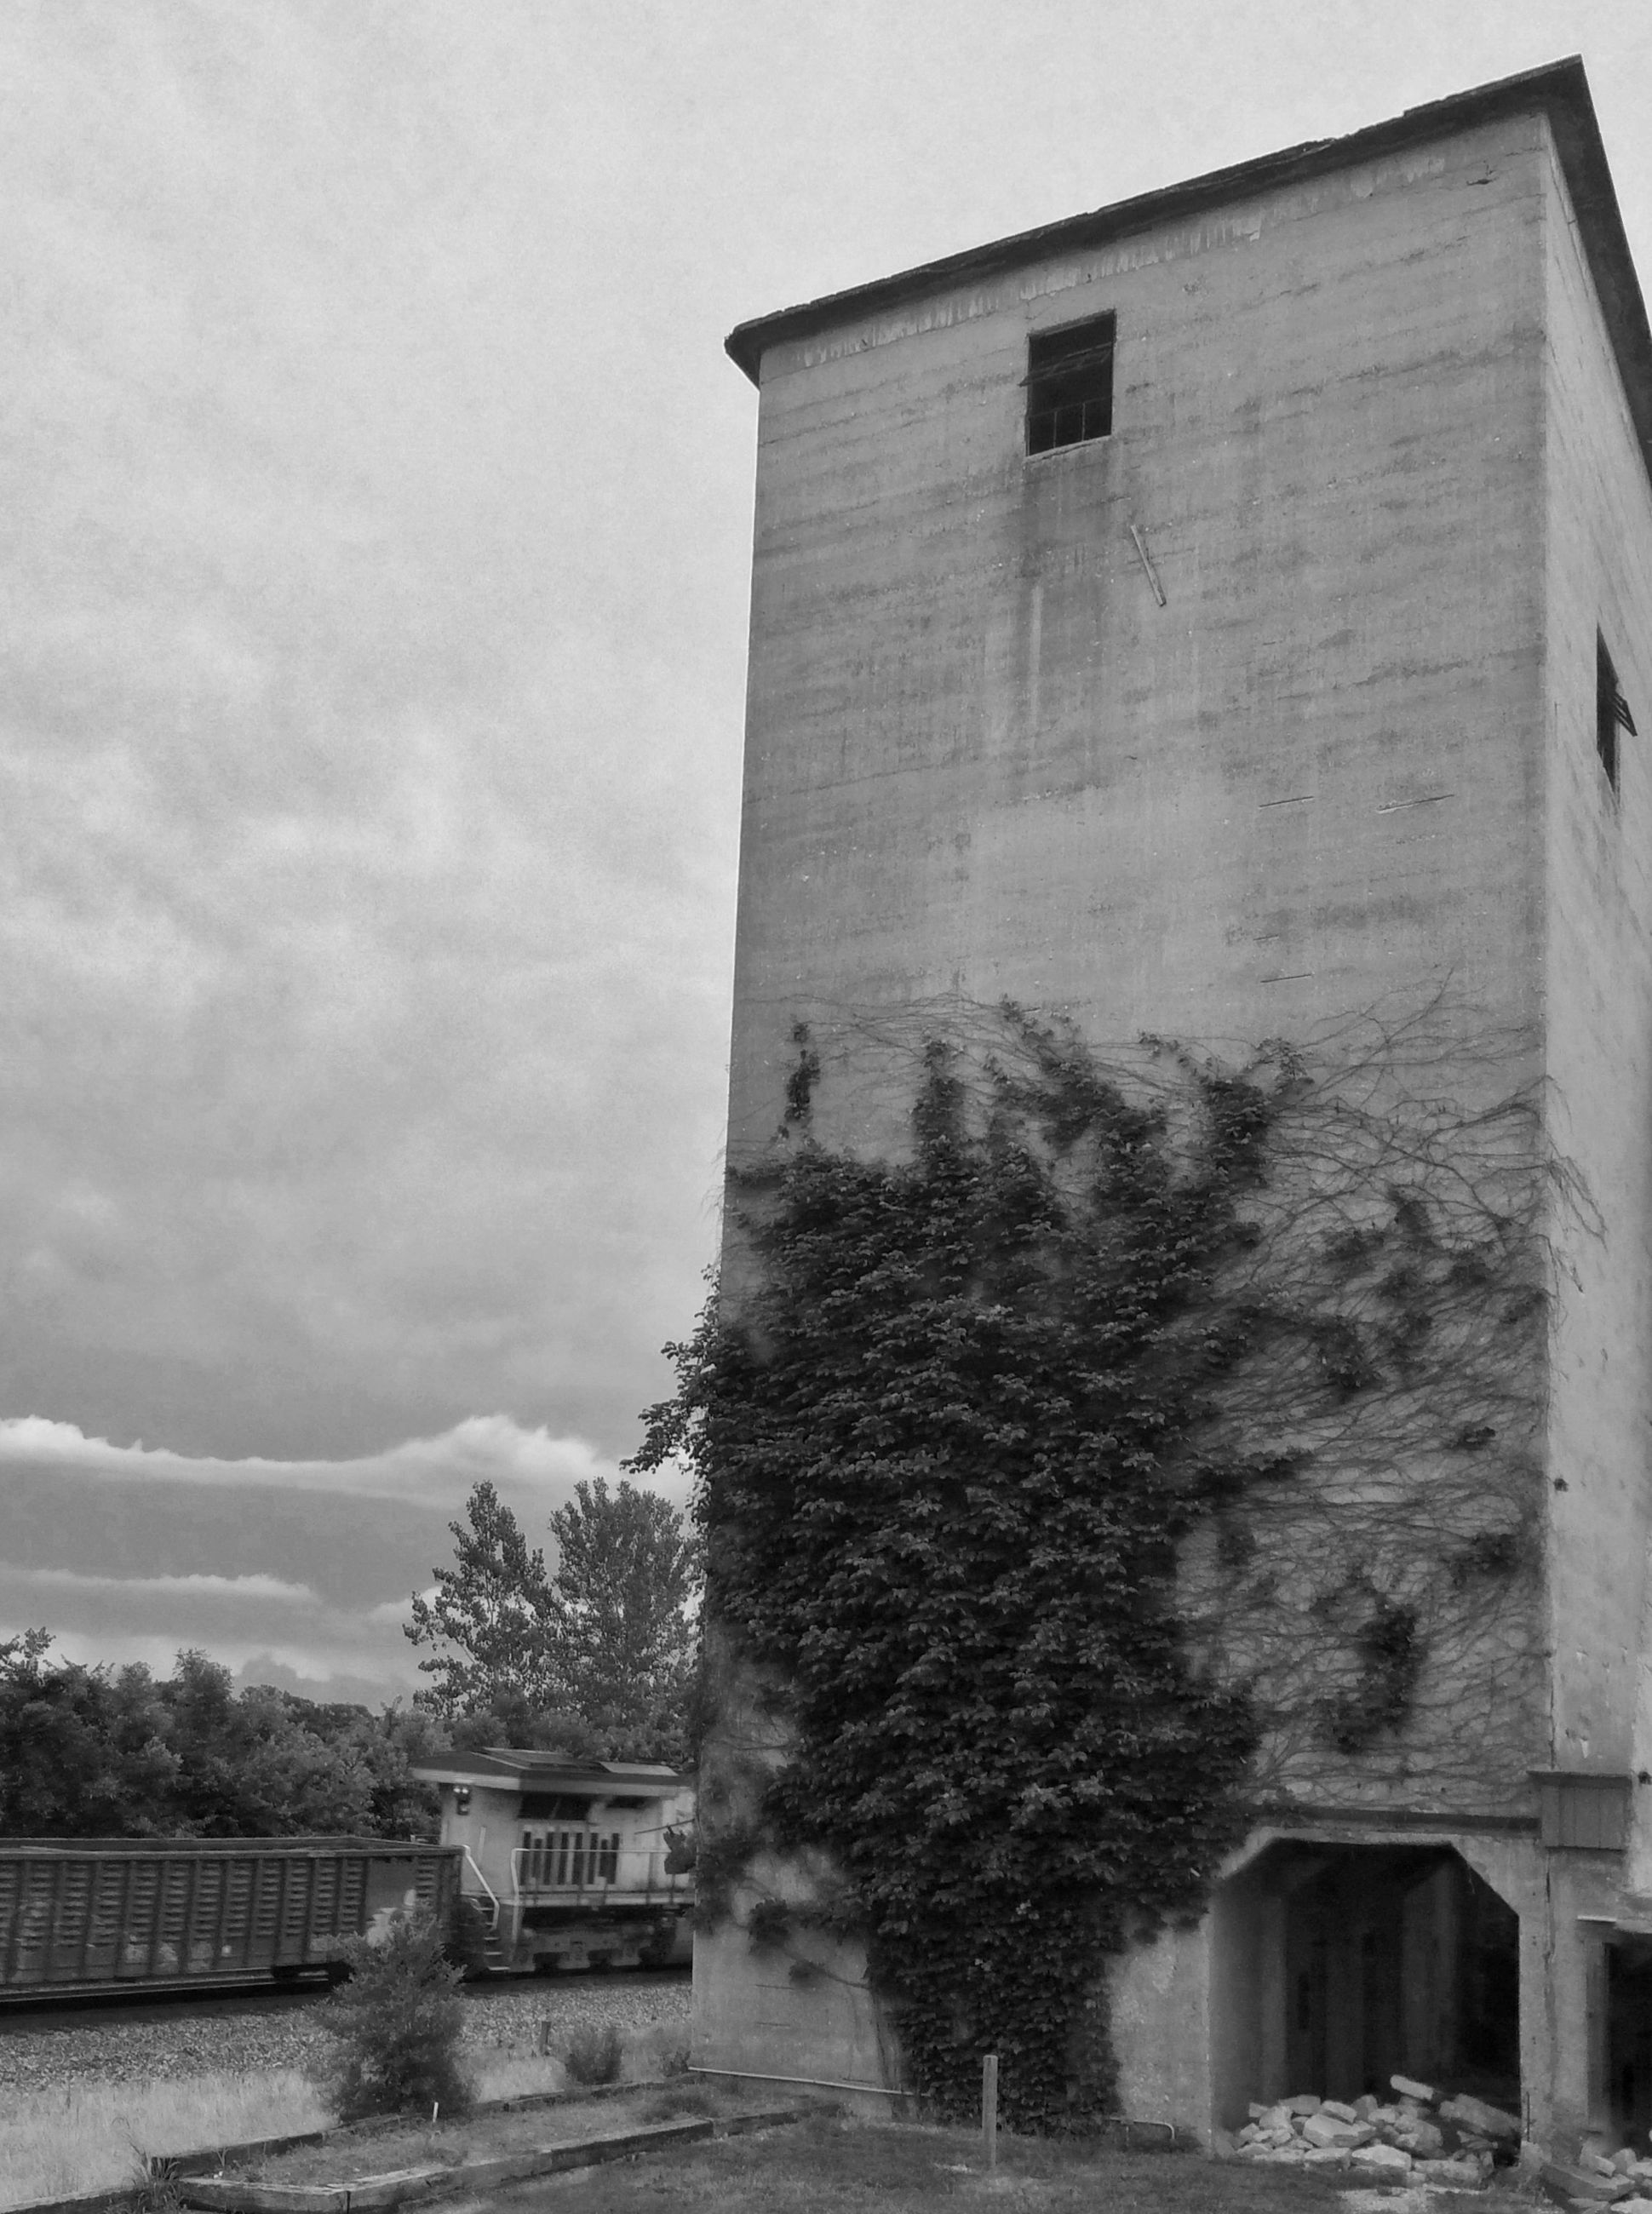 architecture, built structure, building exterior, sky, house, tree, low angle view, cloud - sky, old, residential structure, window, building, exterior, day, abandoned, residential building, outdoors, cloud, no people, nature